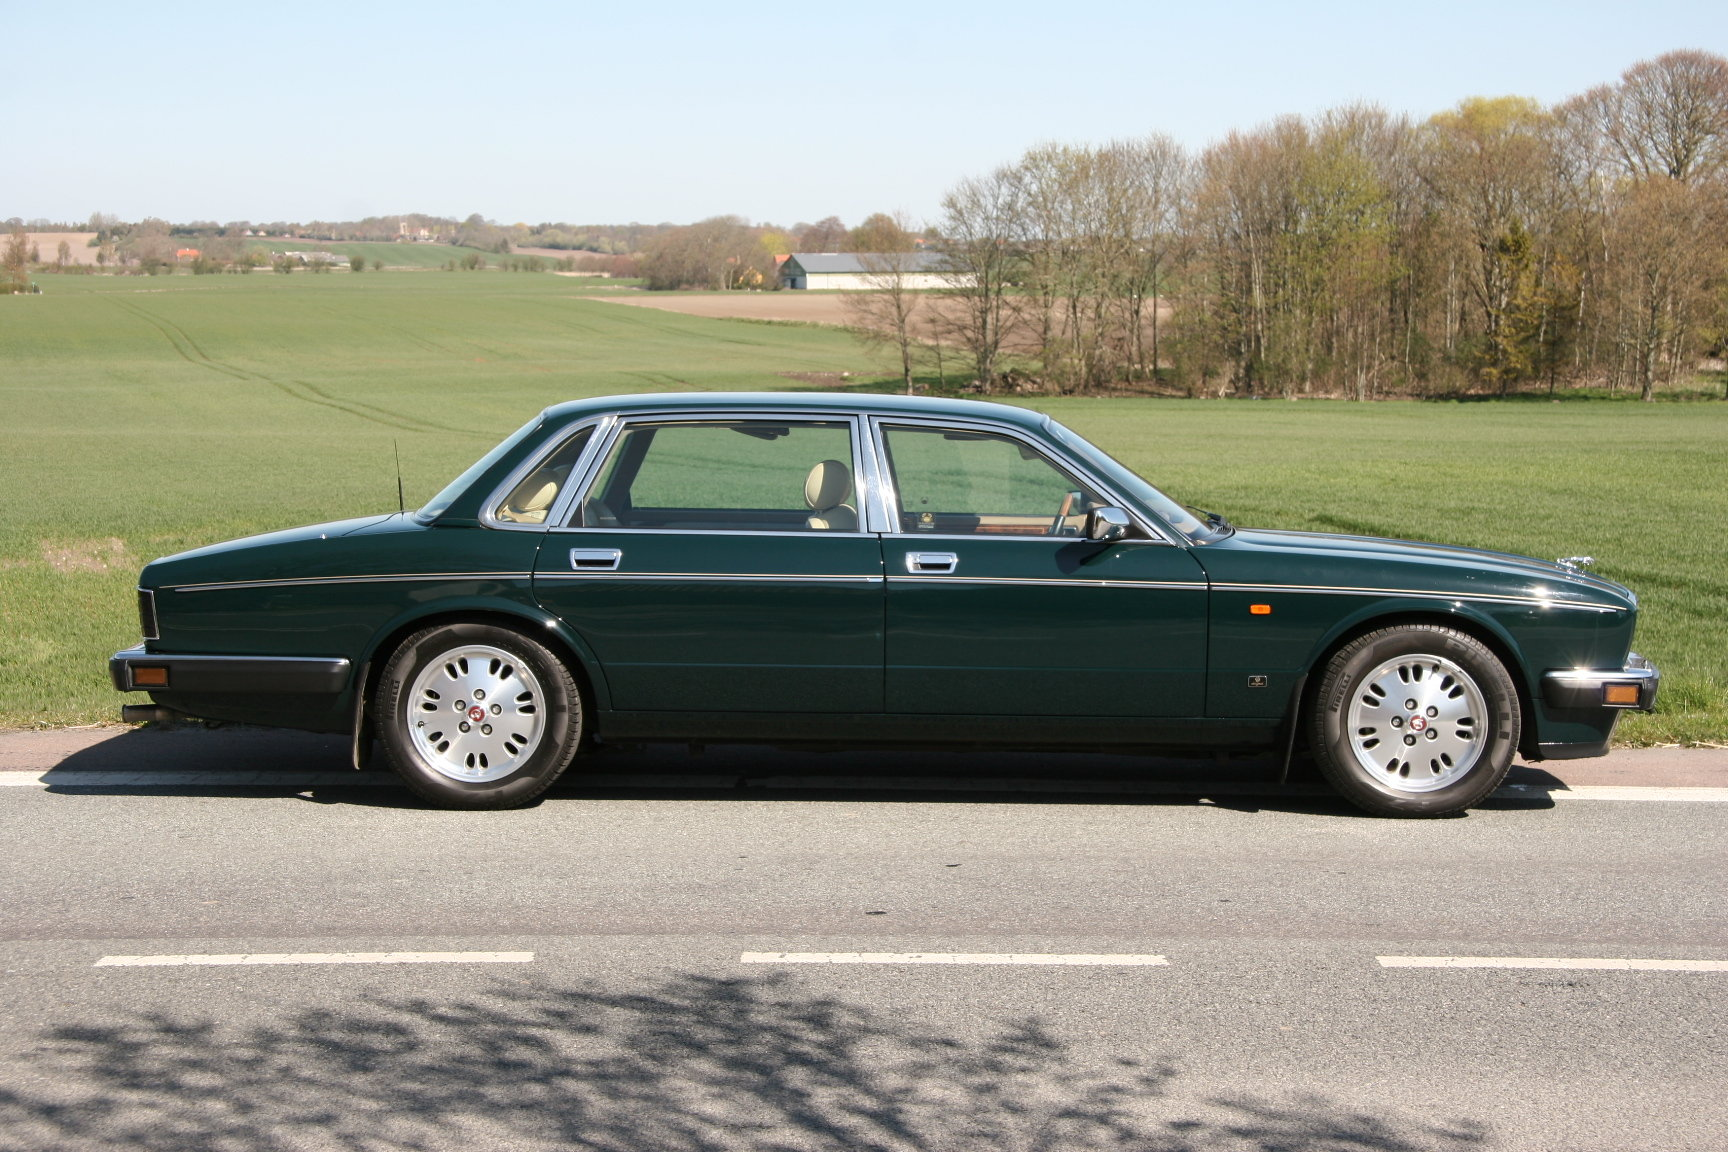 1994 Daimler Double Six Majestic Insignia - NEW PRICE For Sale (picture 1 of 6)